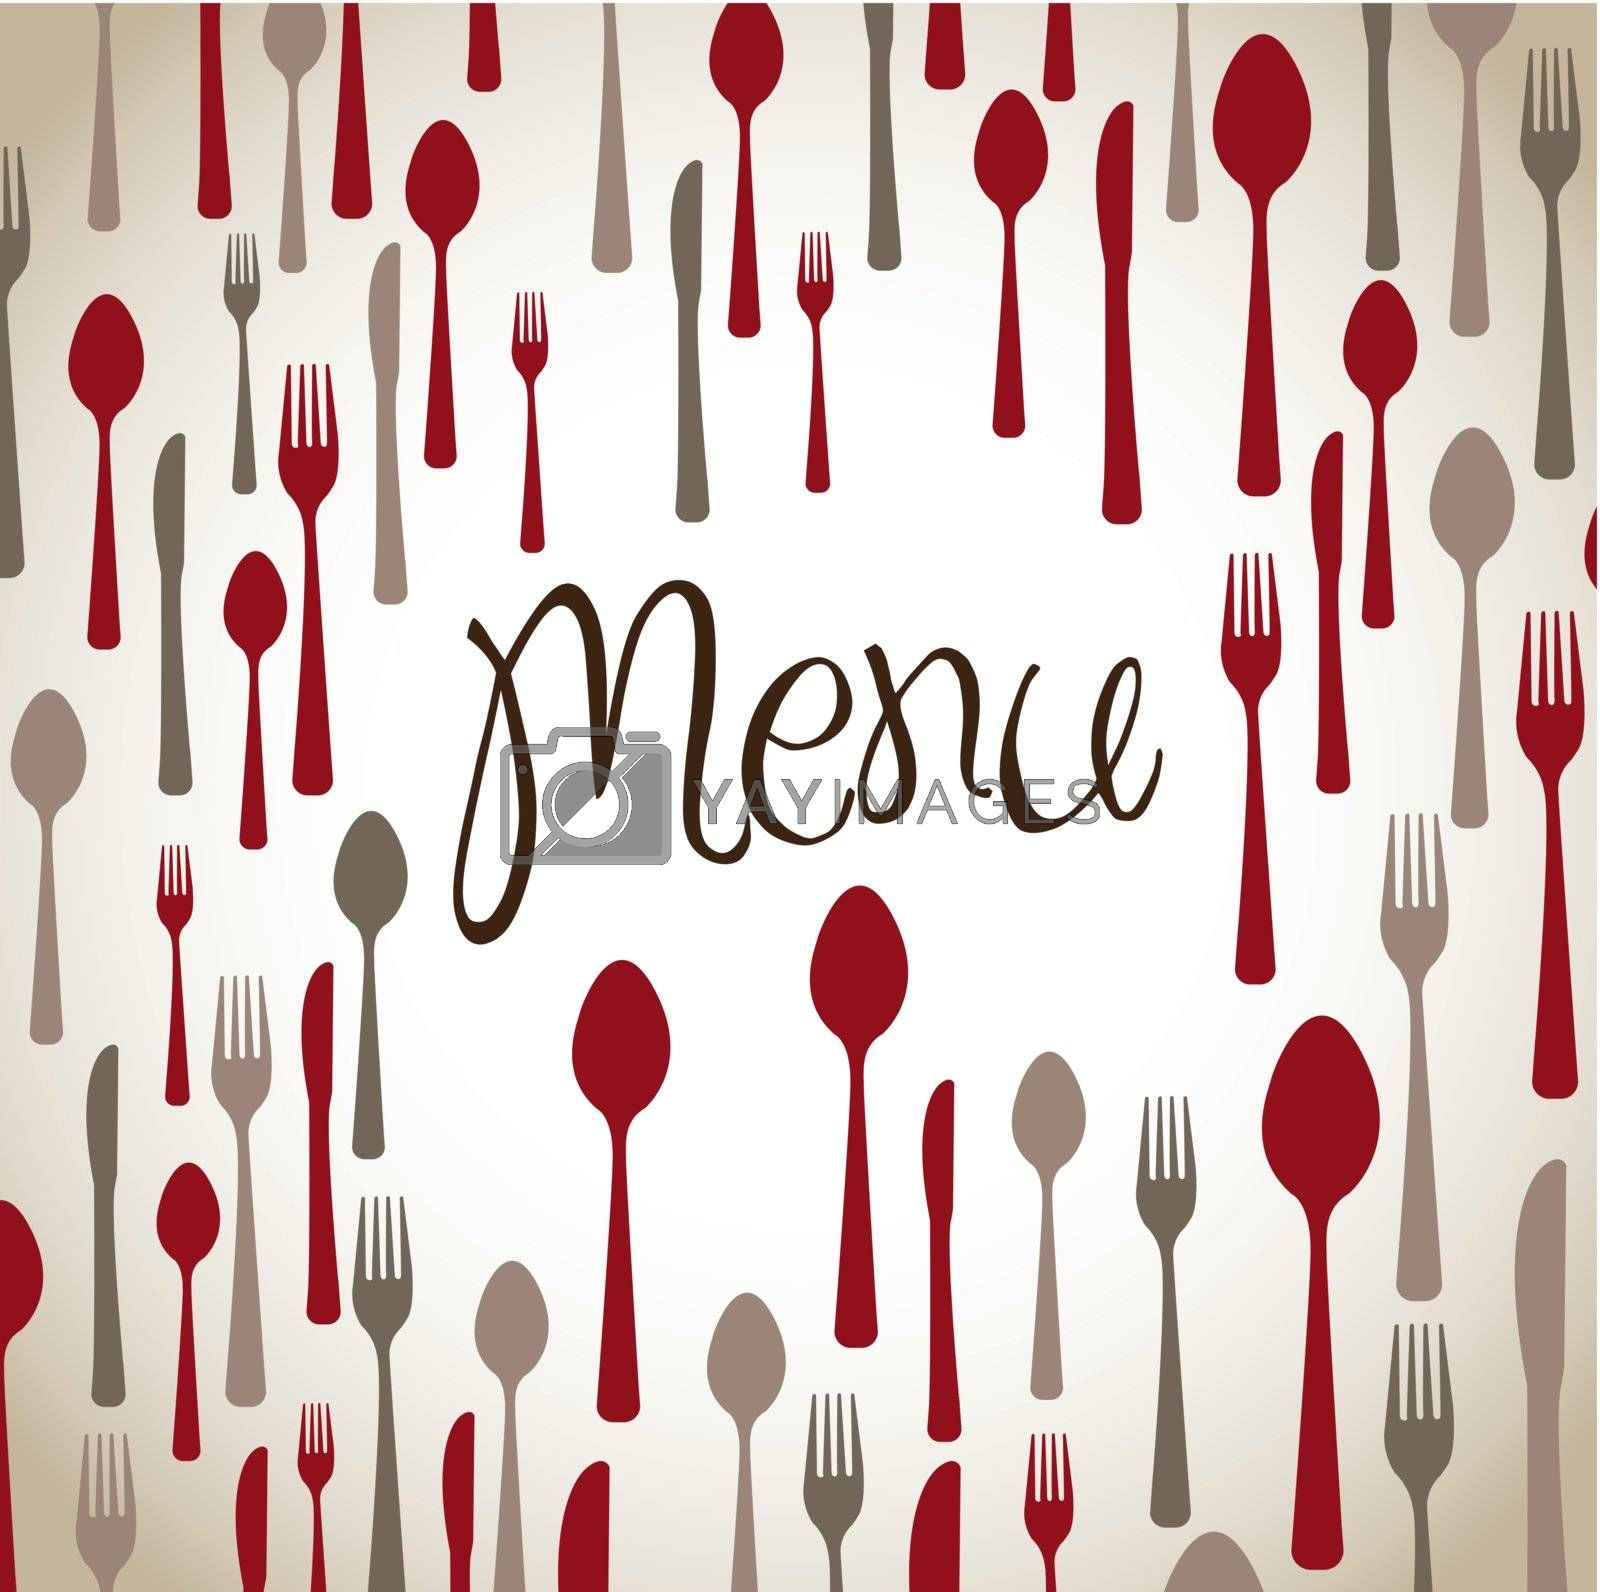 background of menu with cutlery vector illustration